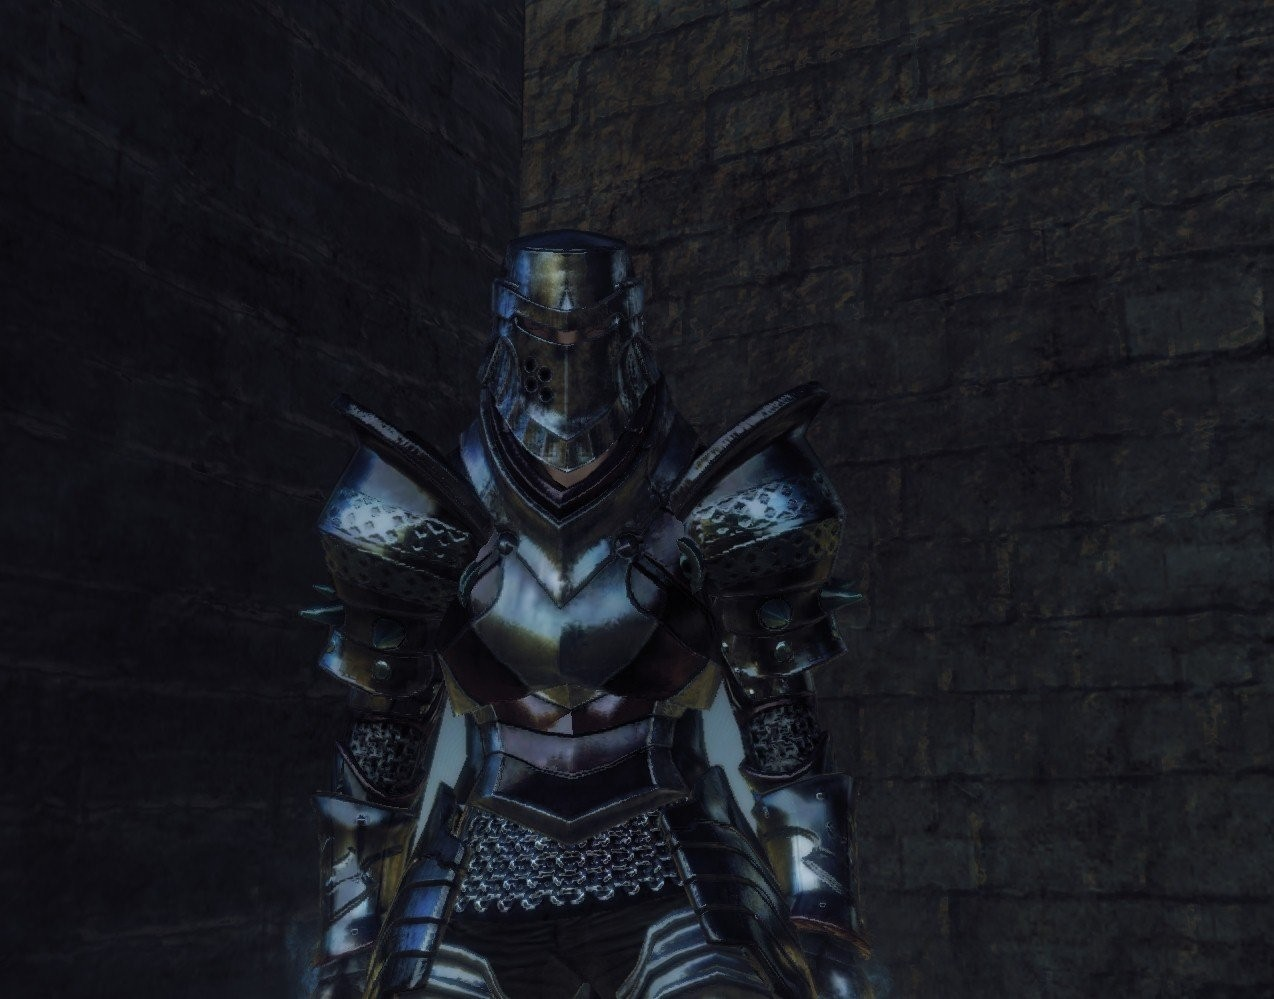 ArcheAge - Archeage armor 2